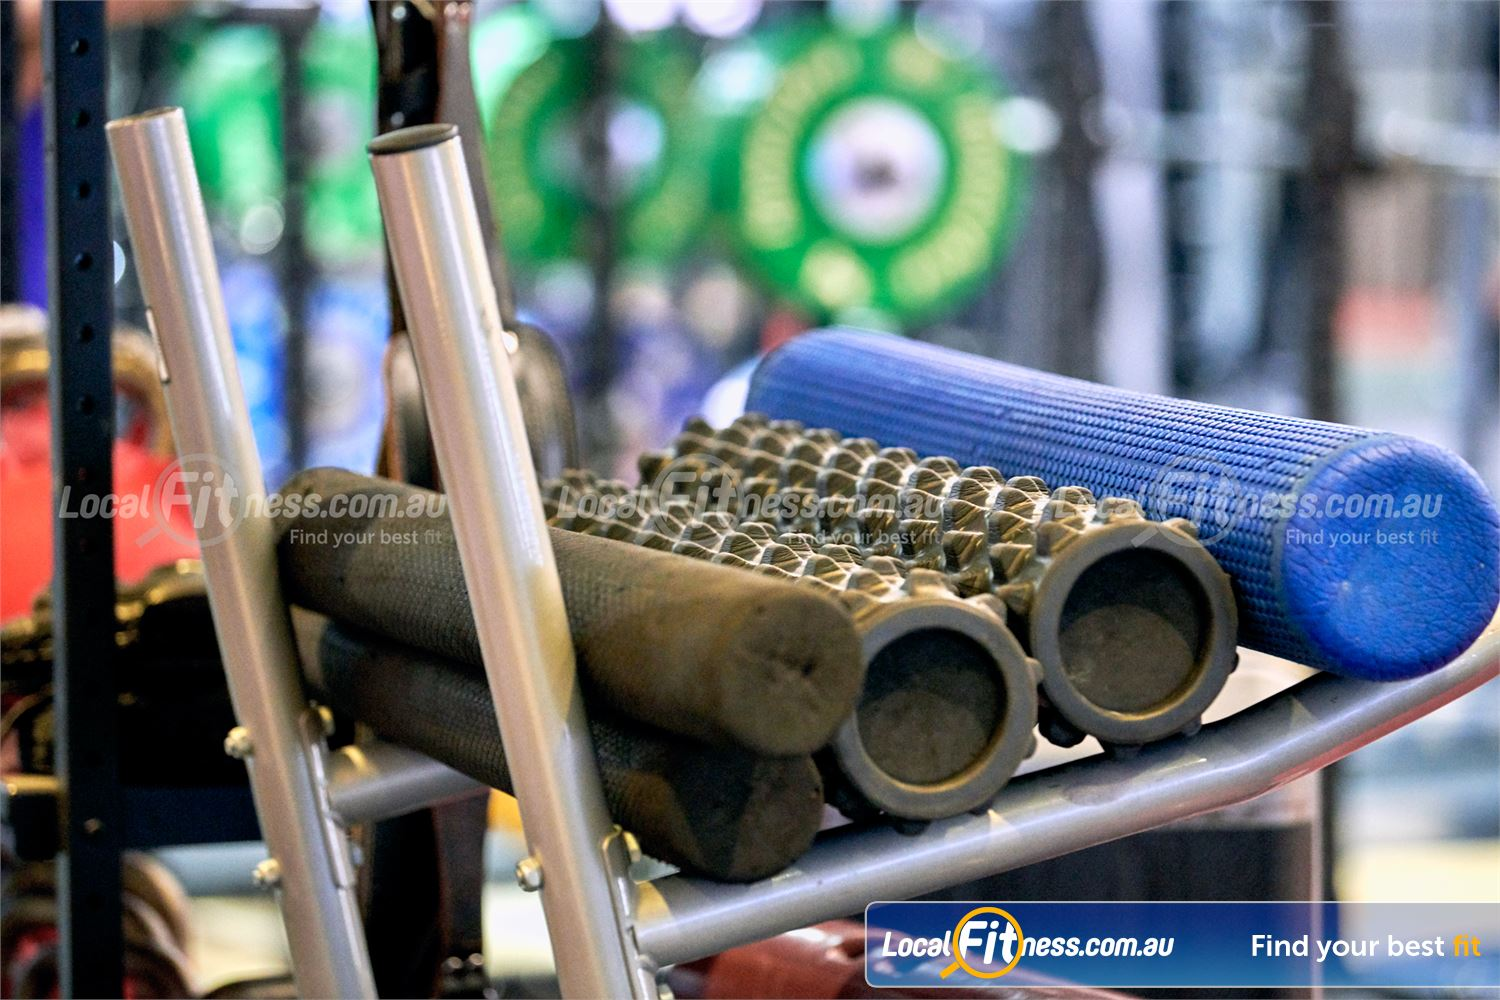 Fitness First Erina Fair Erina Fully equipped for abs and stretching with a range of foam rollers.